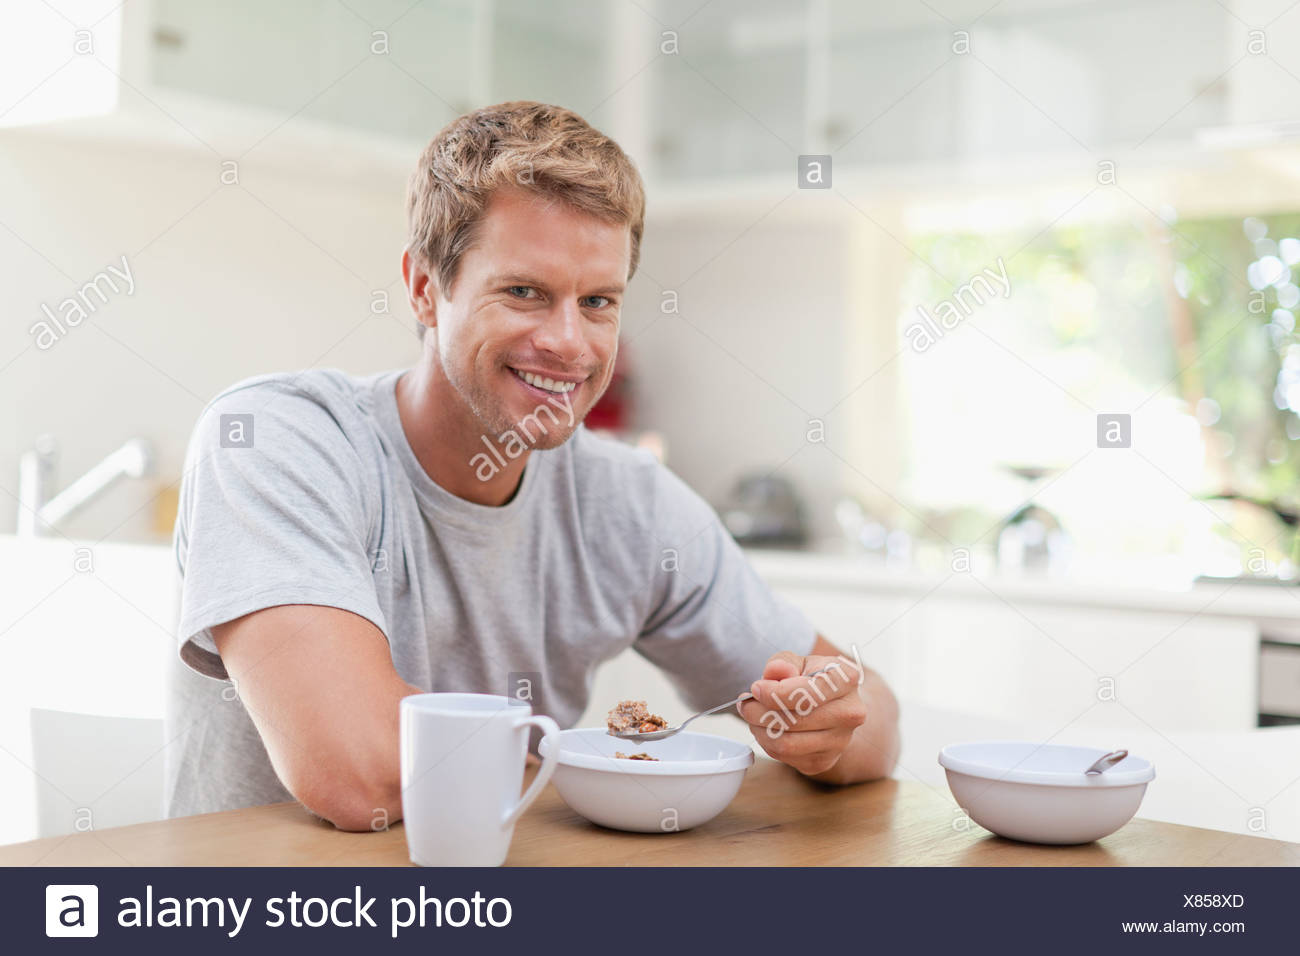 Man eating breakfast in kitchen Banque D'Images